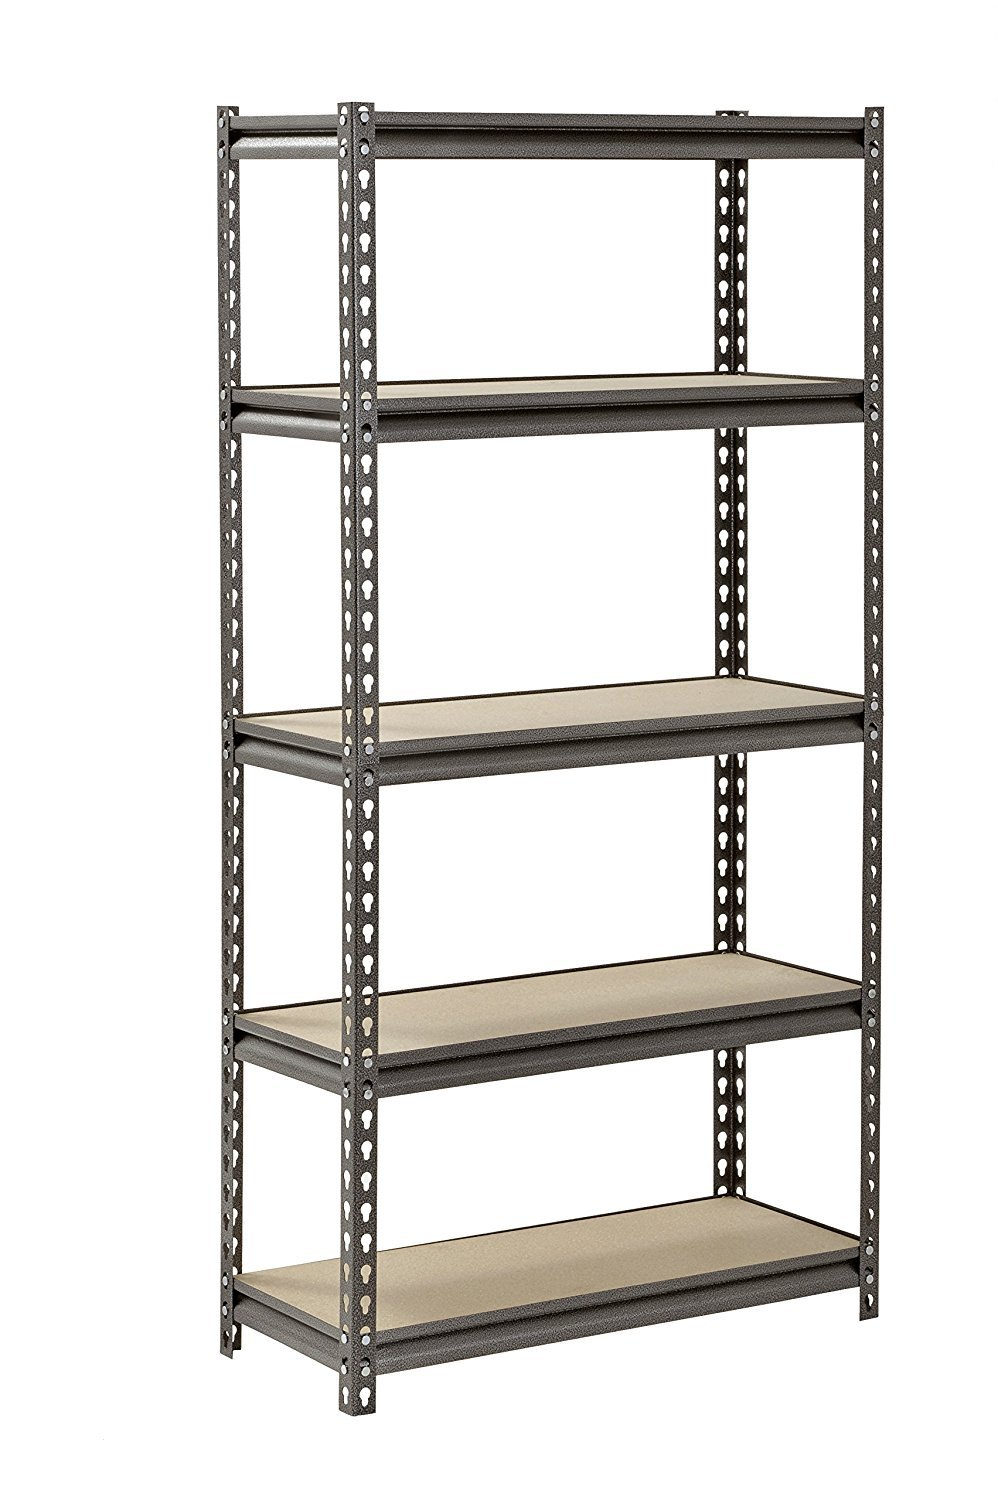 Muscle Rack UR301260PB5P-SV Silver Vein Steel Storage Rack, 5 Adjustable Shelves, 4000 lb. Capacity, 60'' Height x 30'' Width x 12'' Depth (2 Pack)